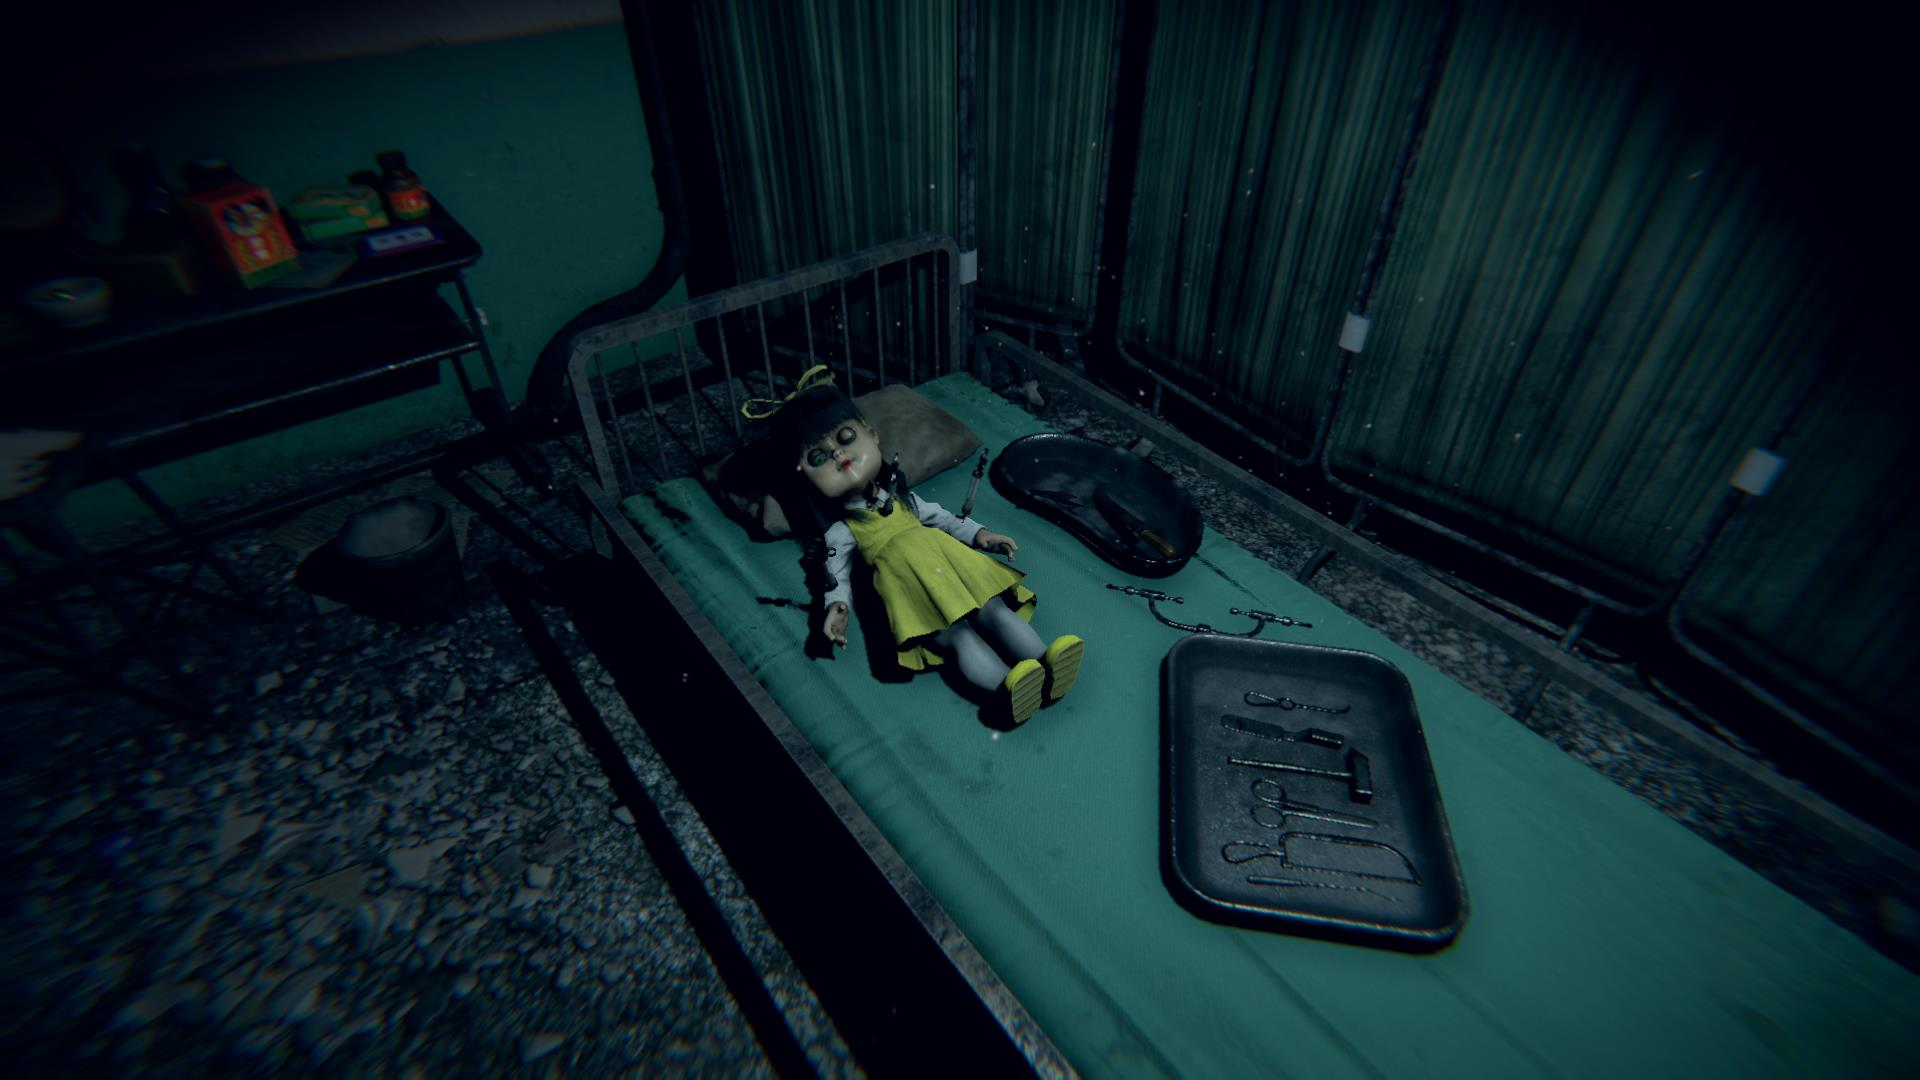 Controversial Taiwanese horror game Devotion will be preserved by Harvard following removal from Steam - VG247